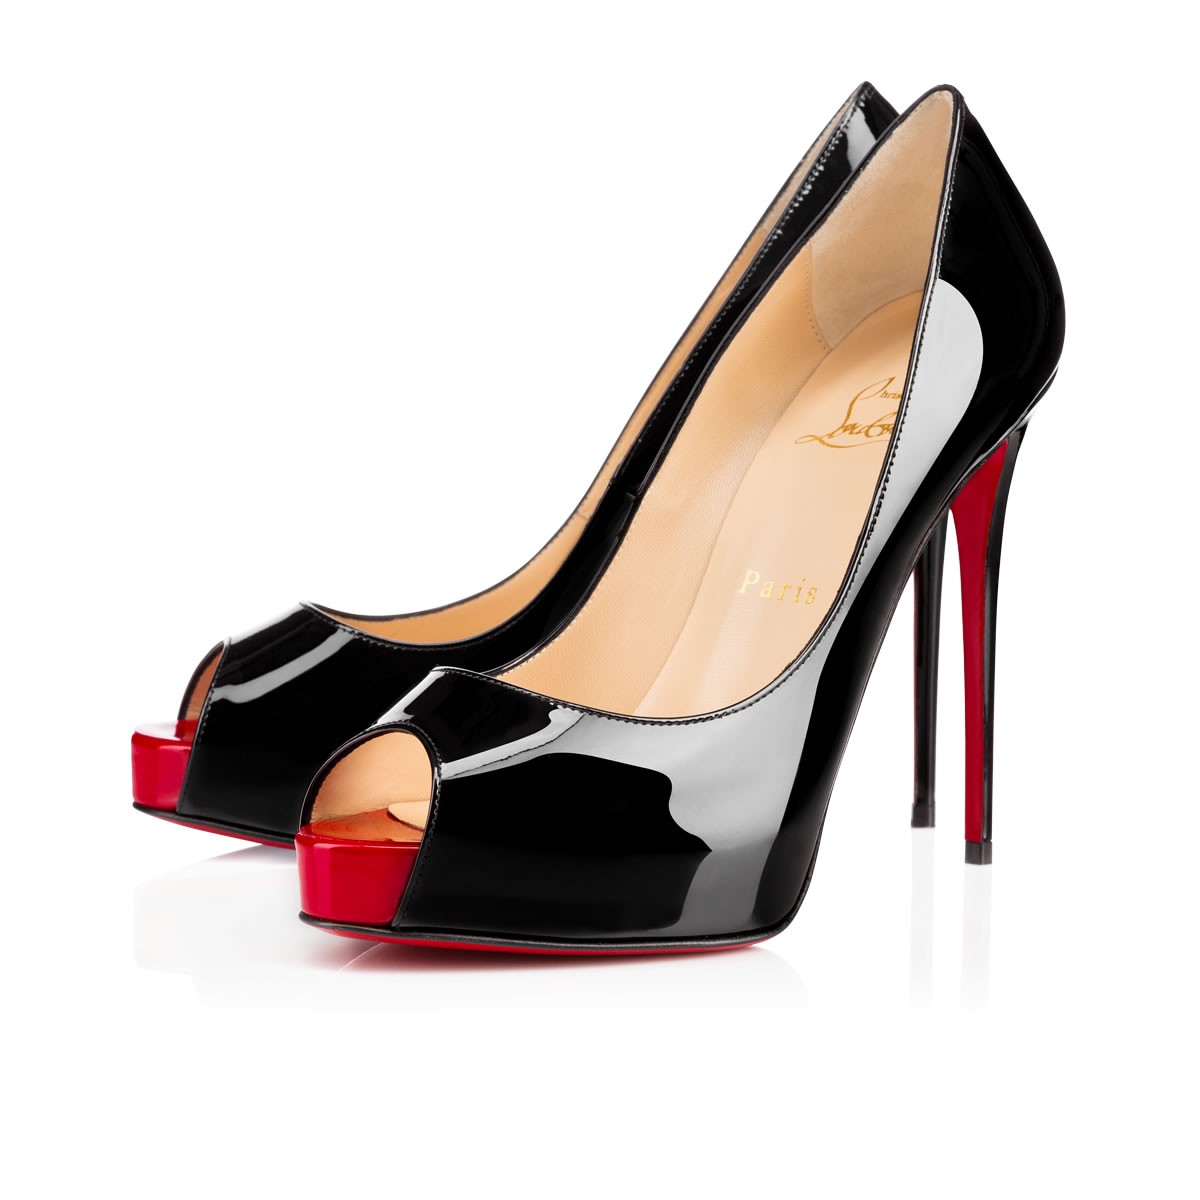 e219f19c4eb New Very Prive 120mm Black/Red Patent Leather